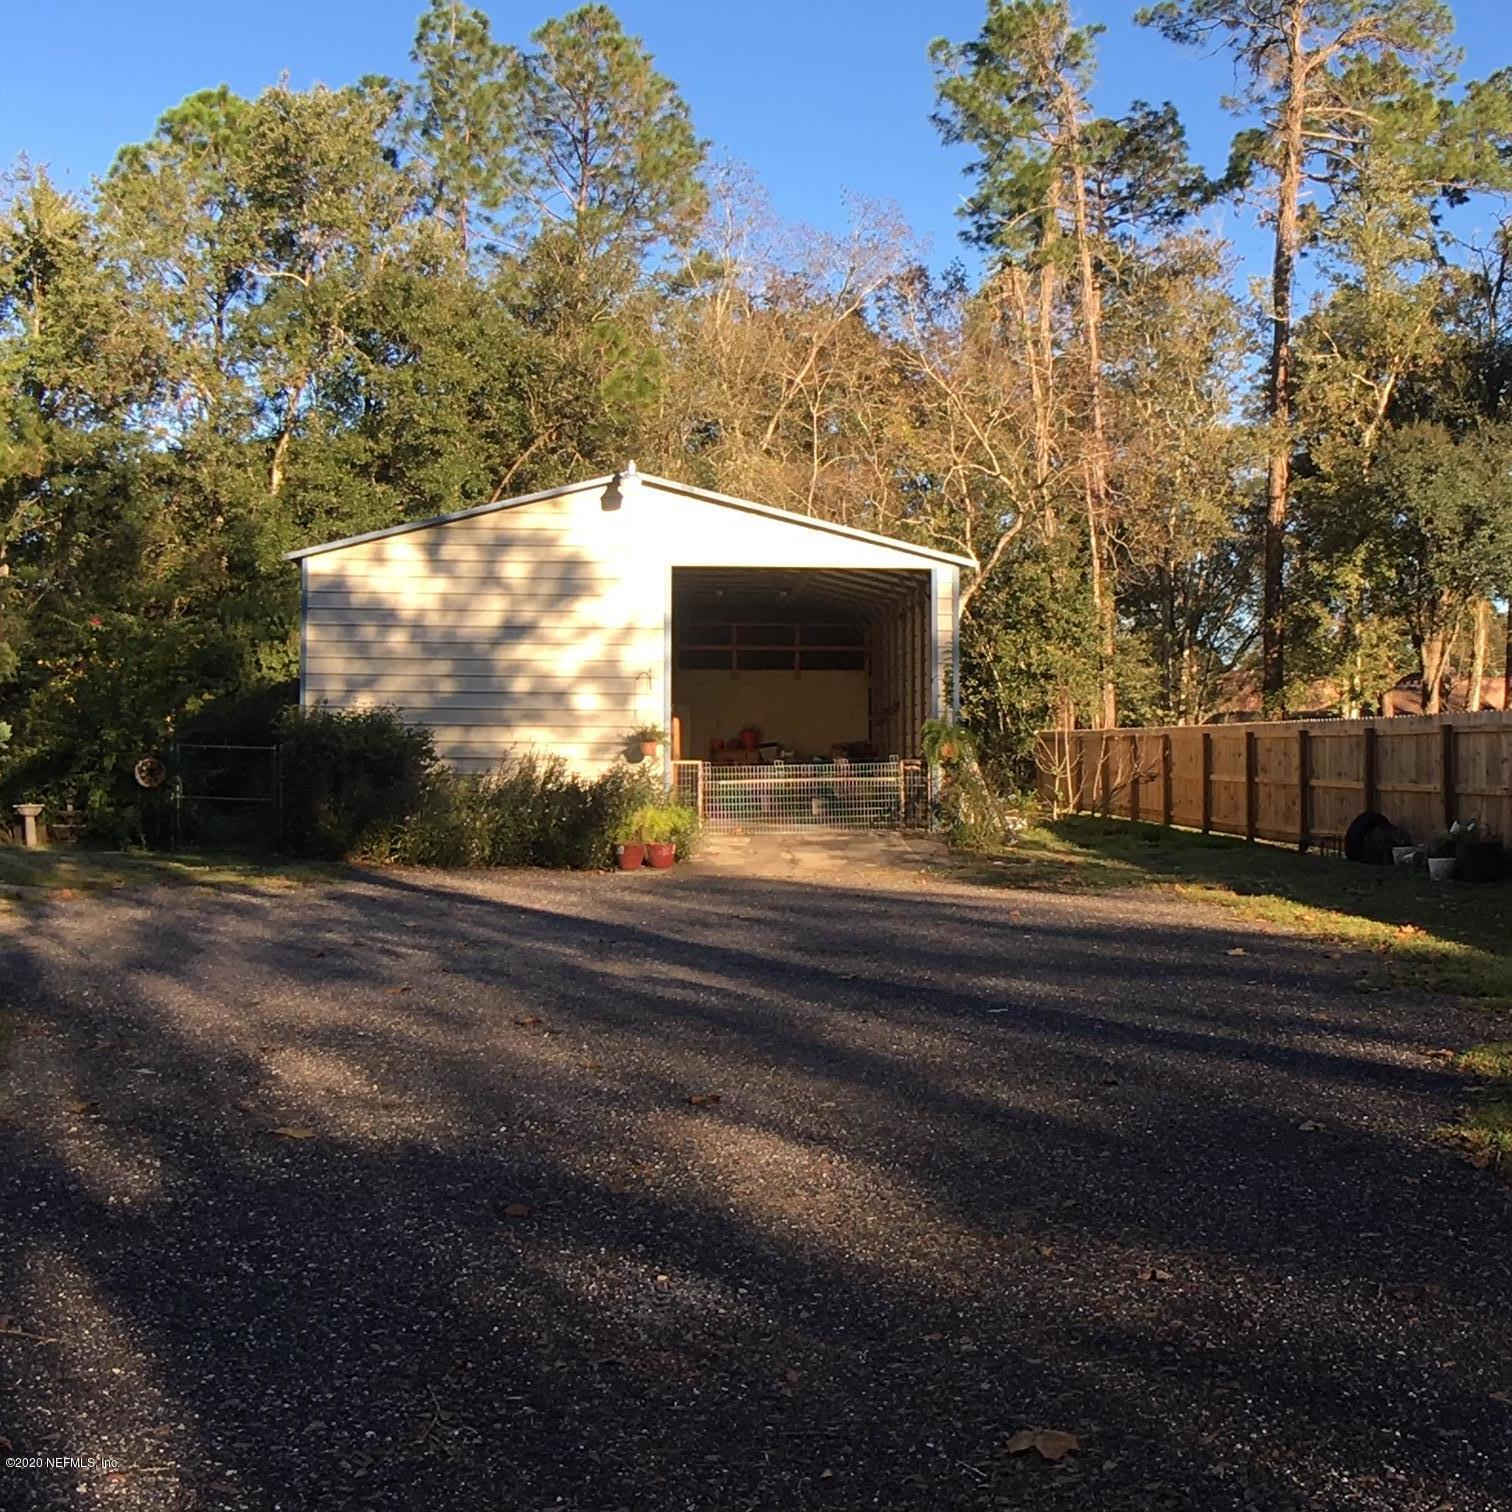 15639 17TH, STARKE, FLORIDA 32091, 3 Bedrooms Bedrooms, ,2 BathroomsBathrooms,Residential,For sale,17TH,1083361